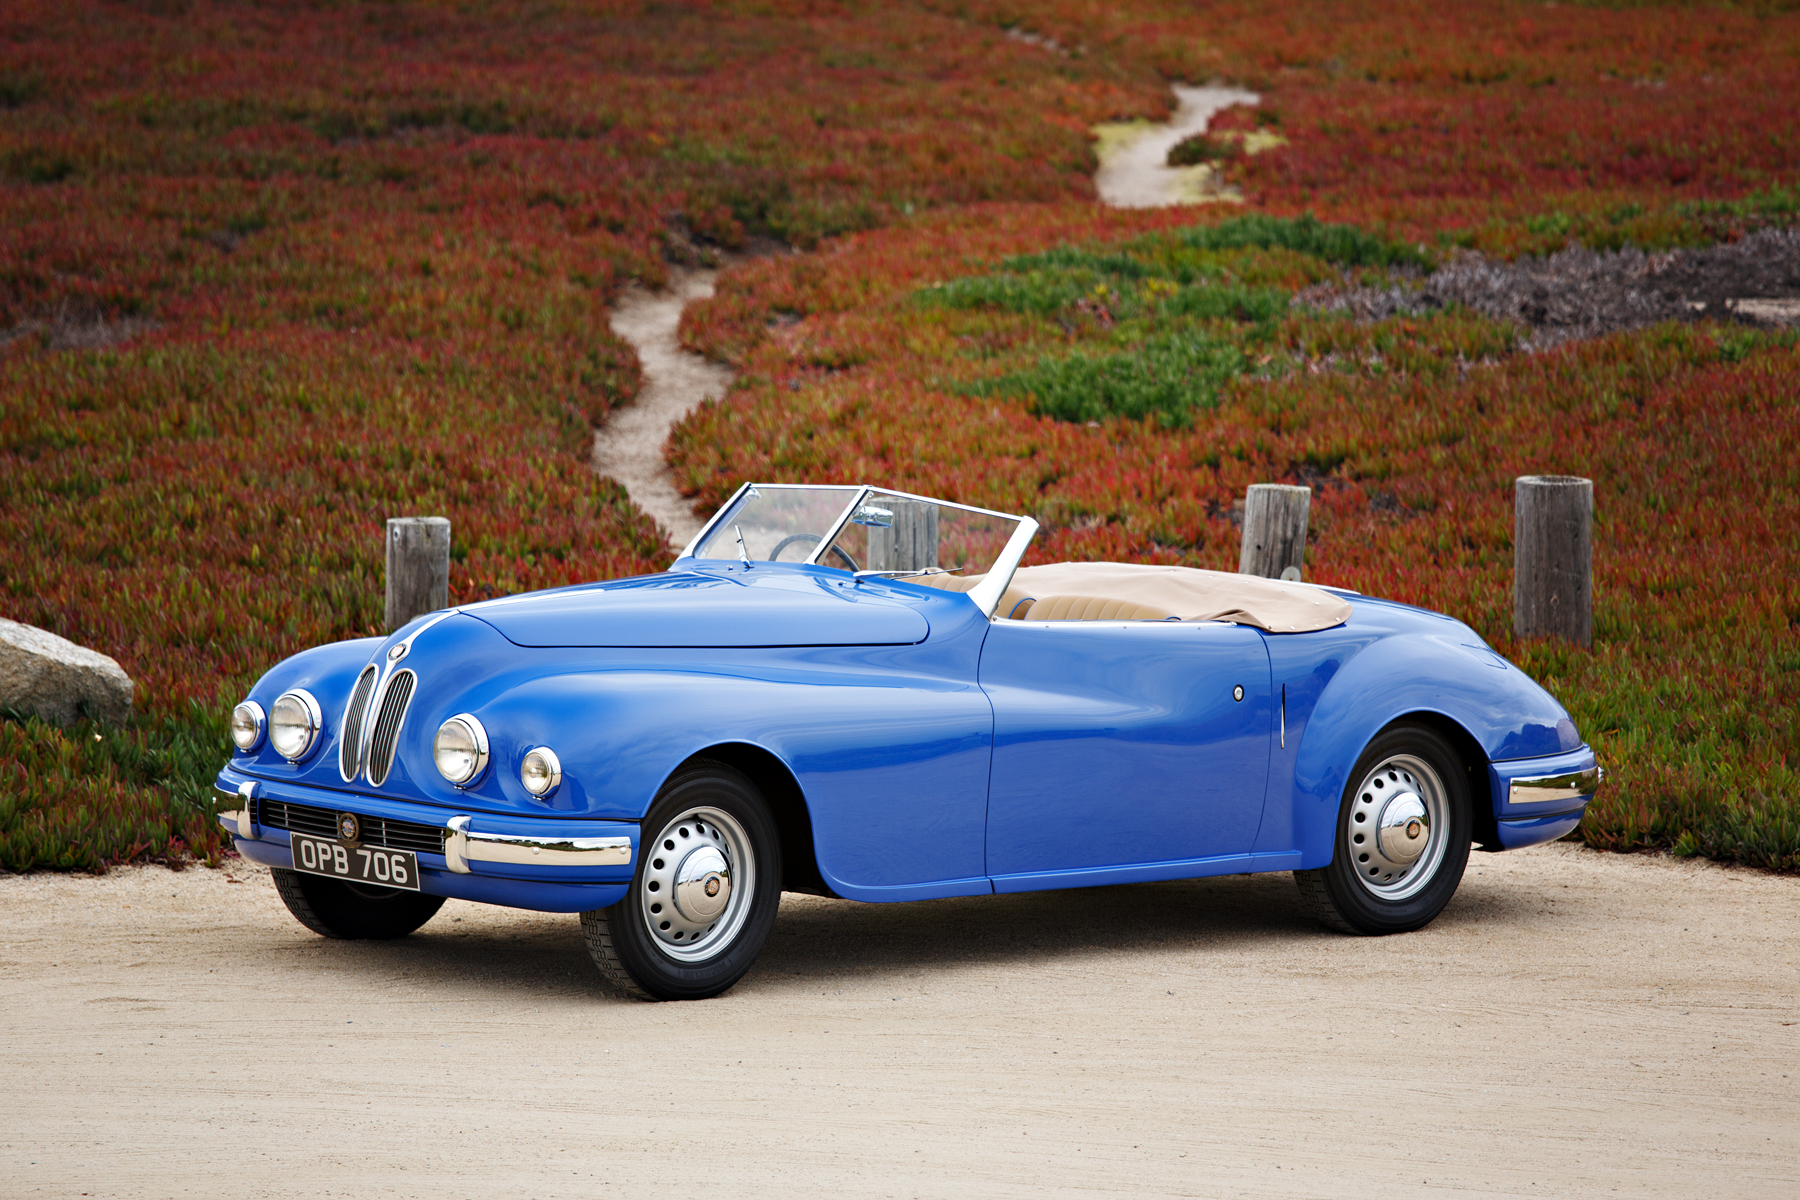 Bristol Cars finally closes its doors after 75 years